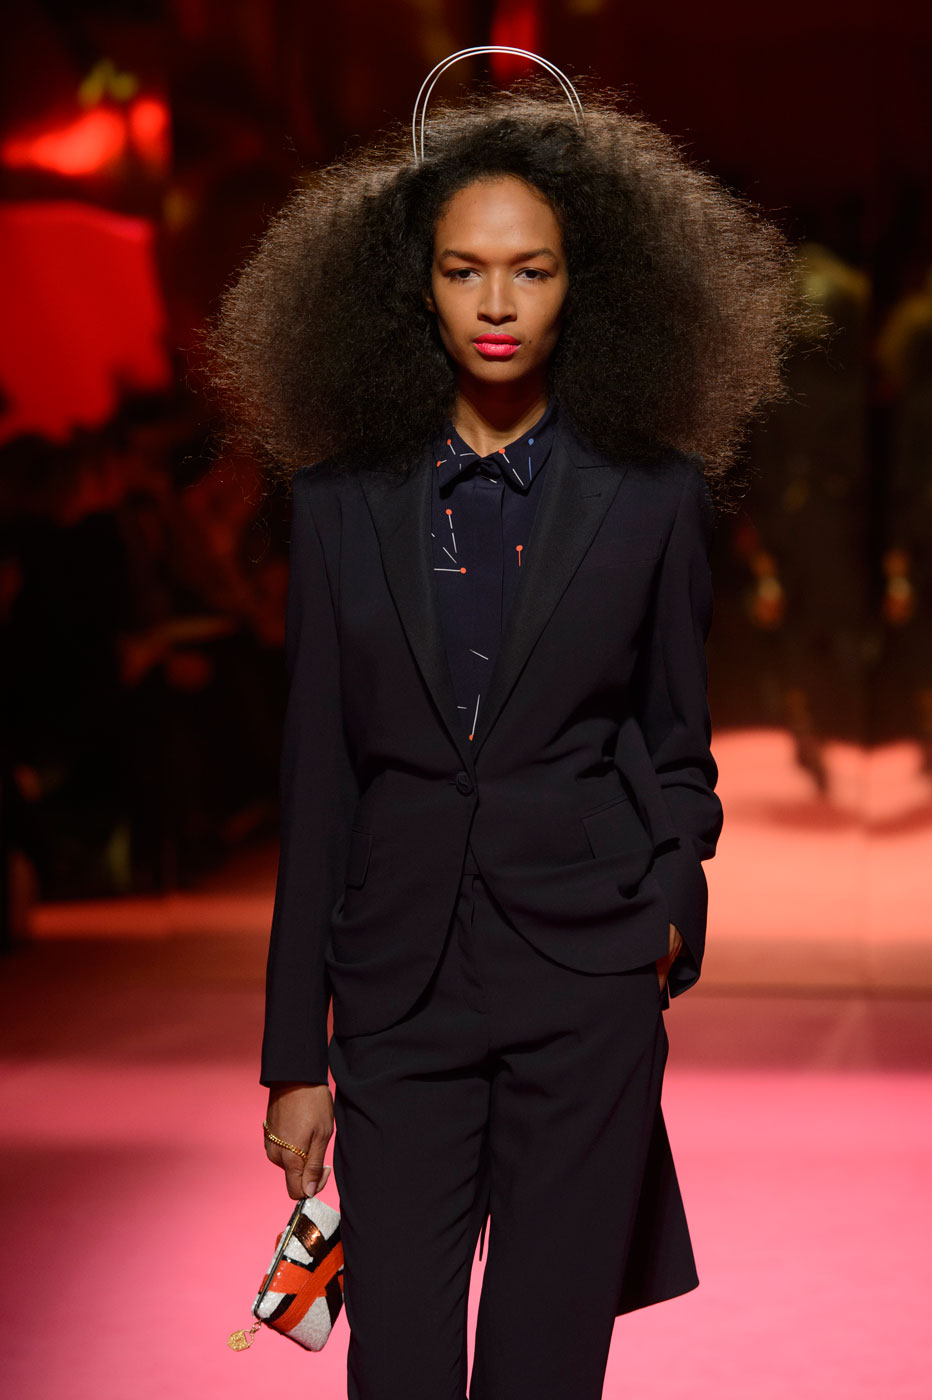 Schiaparelli-fashion-runway-show-haute-couture-paris-spring-summer-2015-the-impression-25